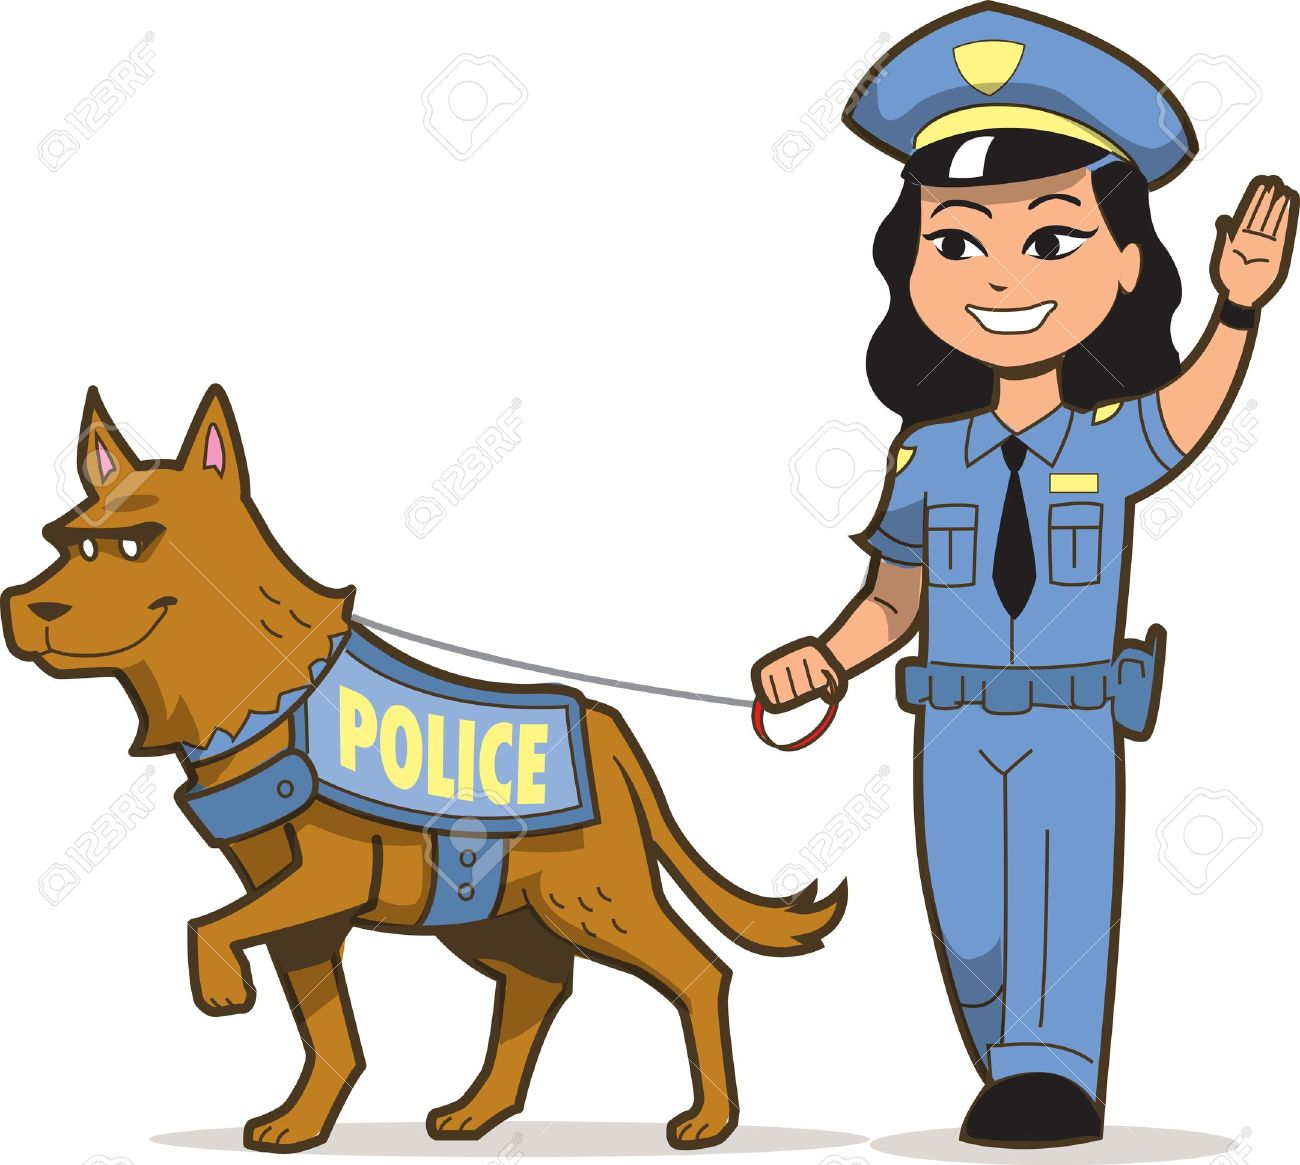 k 9 police dog and asian female police officer royalty free cliparts rh 123rf com clipart police officer free clipart police officer